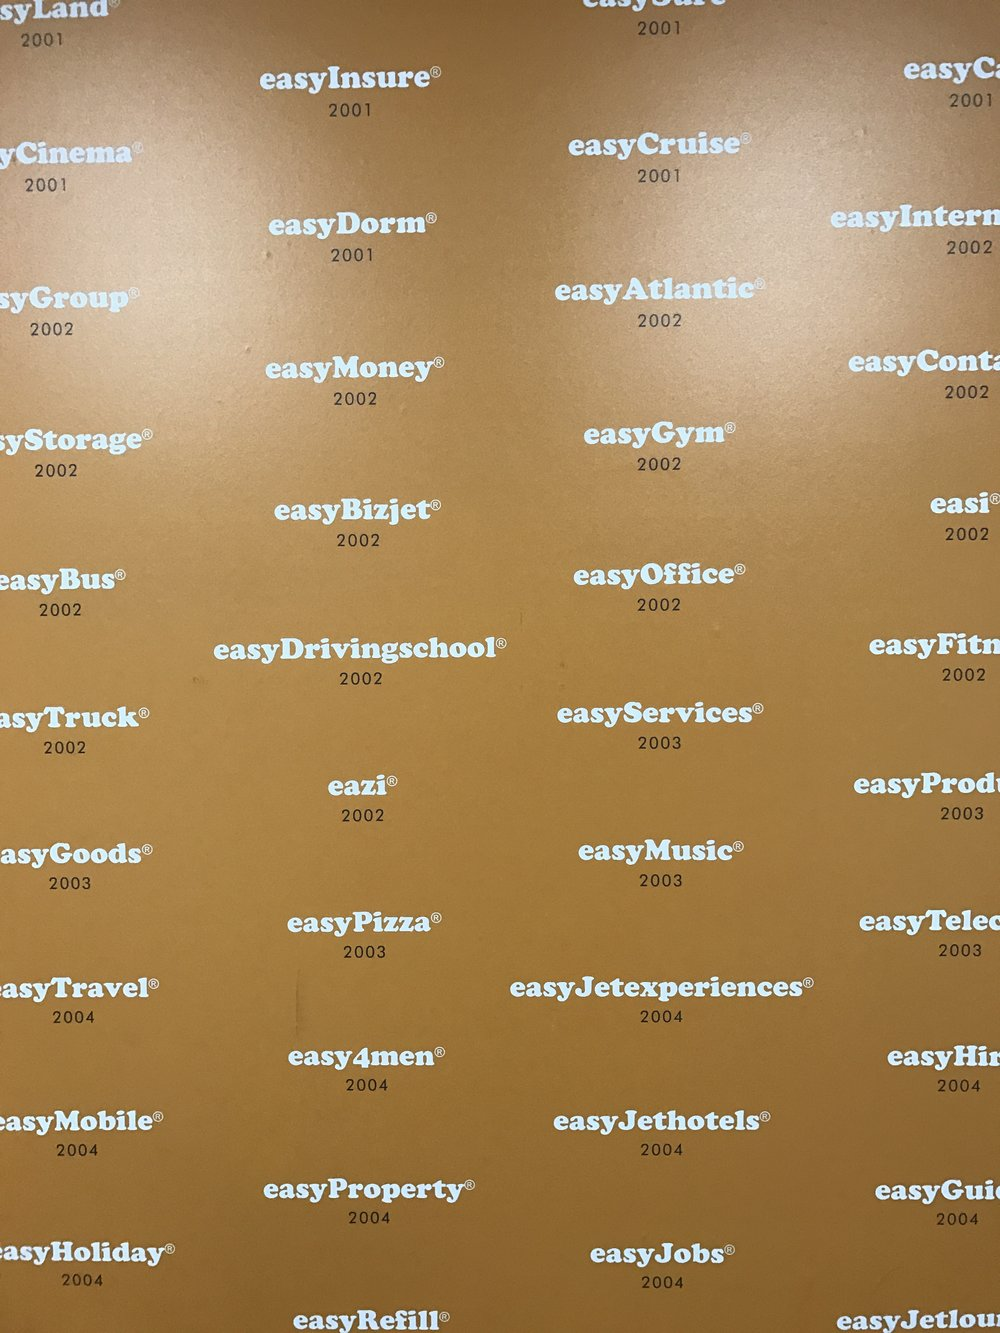 The wall of easy companies.